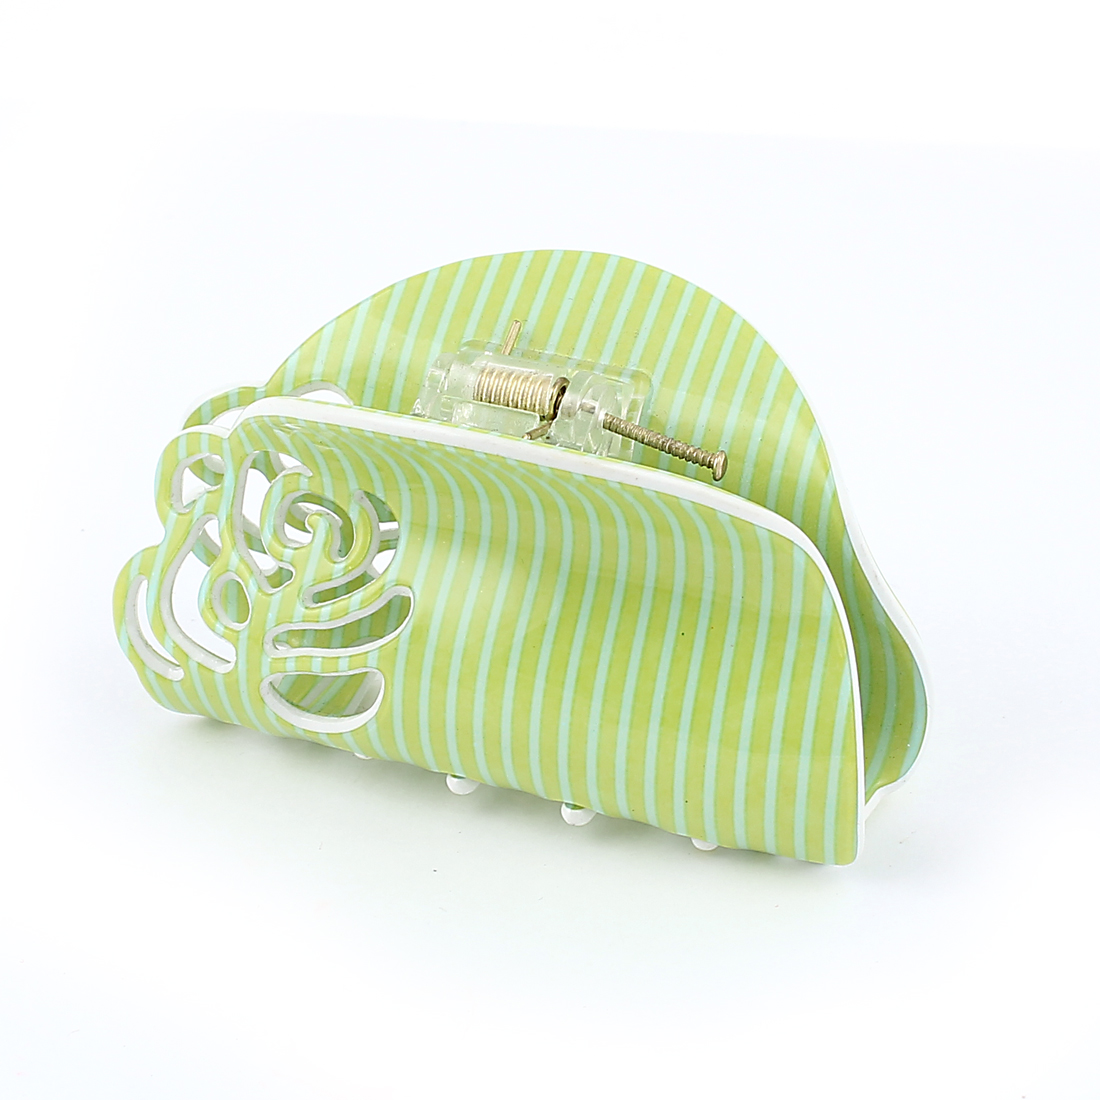 Lady Hairstyle Toothed Spring Loaded Hollow Out Flower Blue Green Stripes Pattern Plastic Hairclip Hairclaw Hair Claw Clip